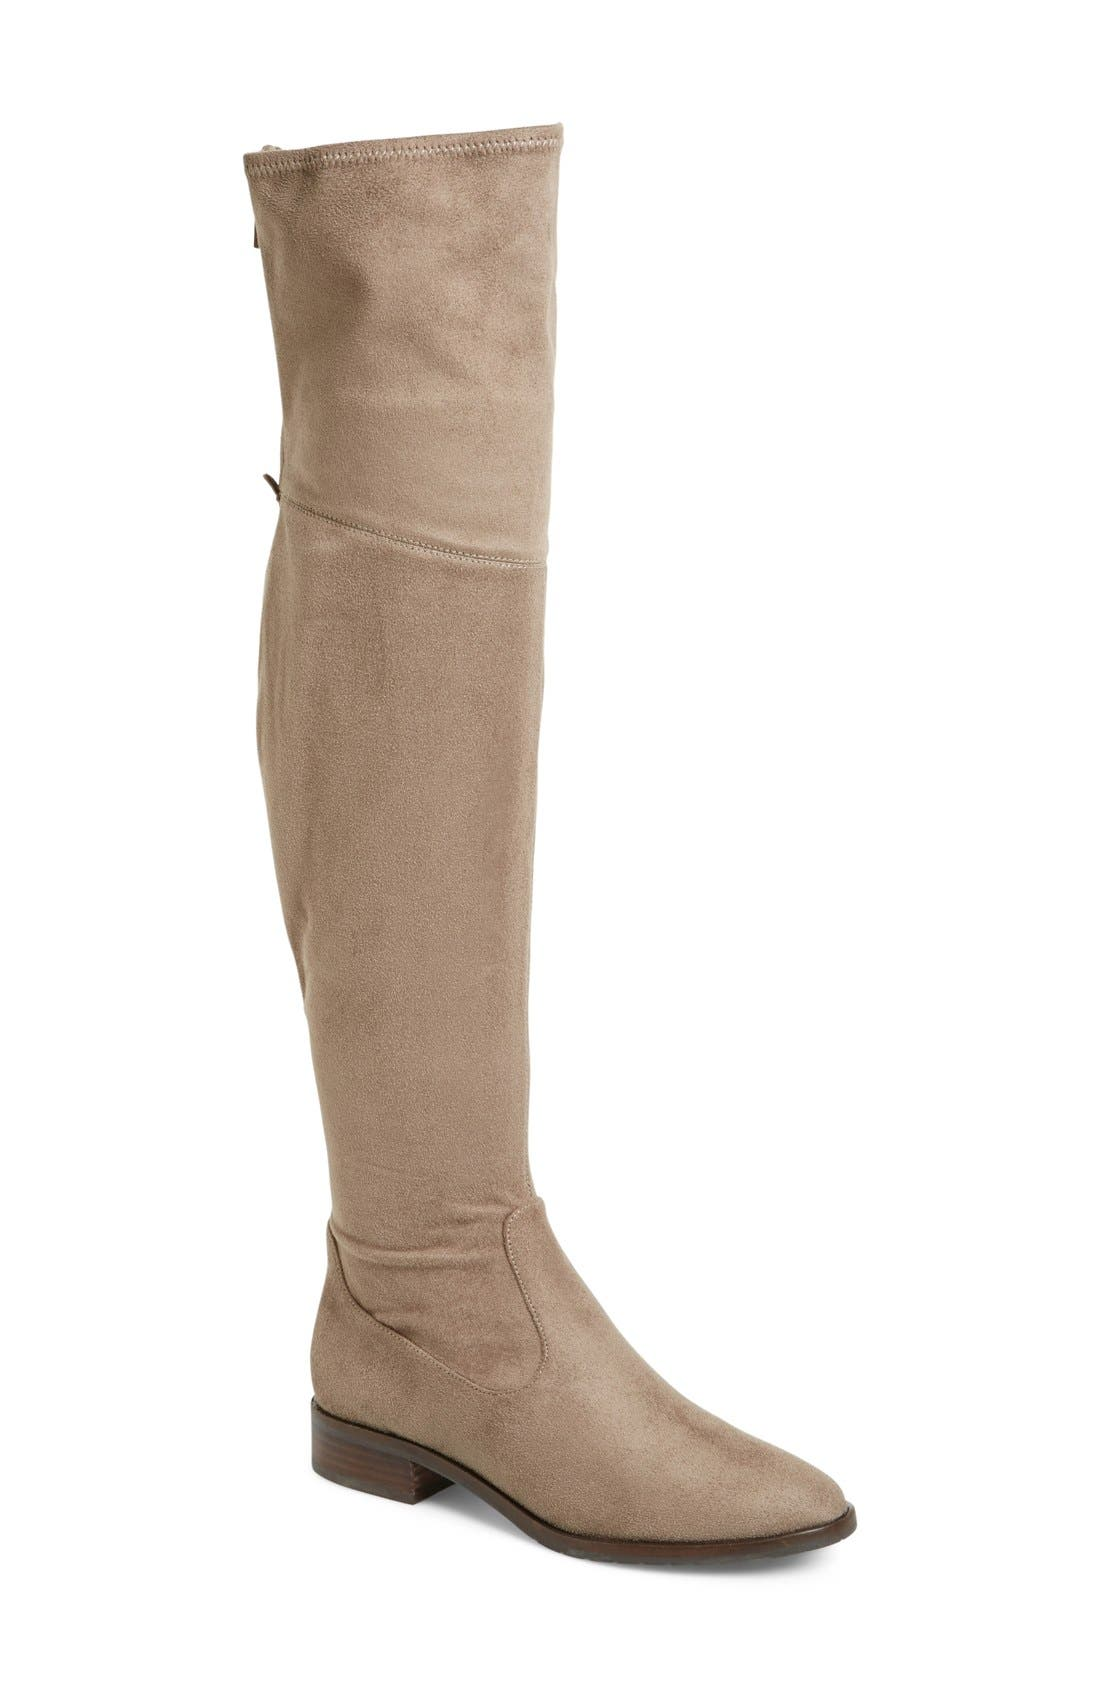 'Livi' Faux Suede Over the Knee Boot,                             Main thumbnail 1, color,                             250